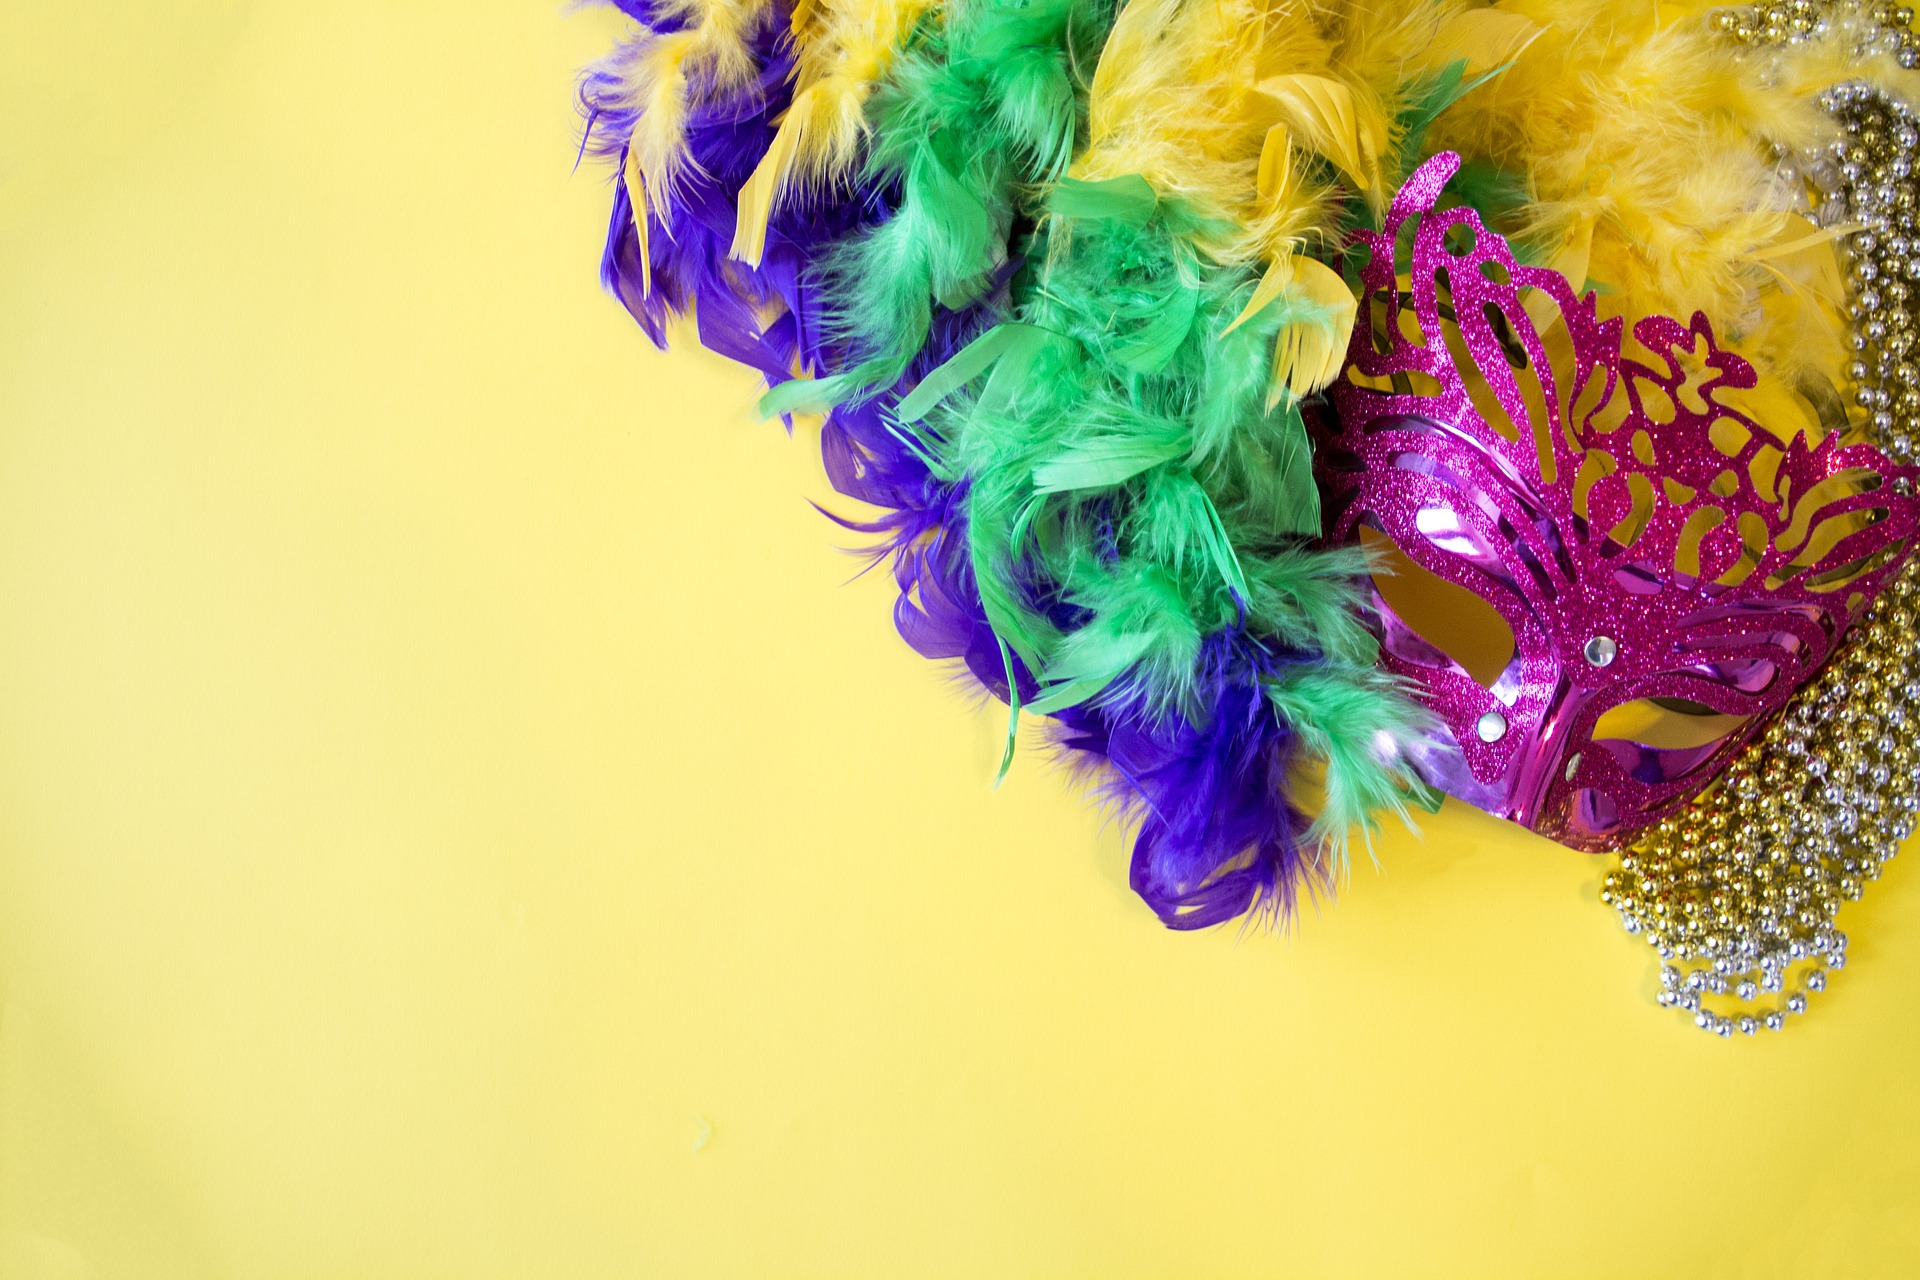 Colorful Mardi Gras mask with a boa on a yellow background